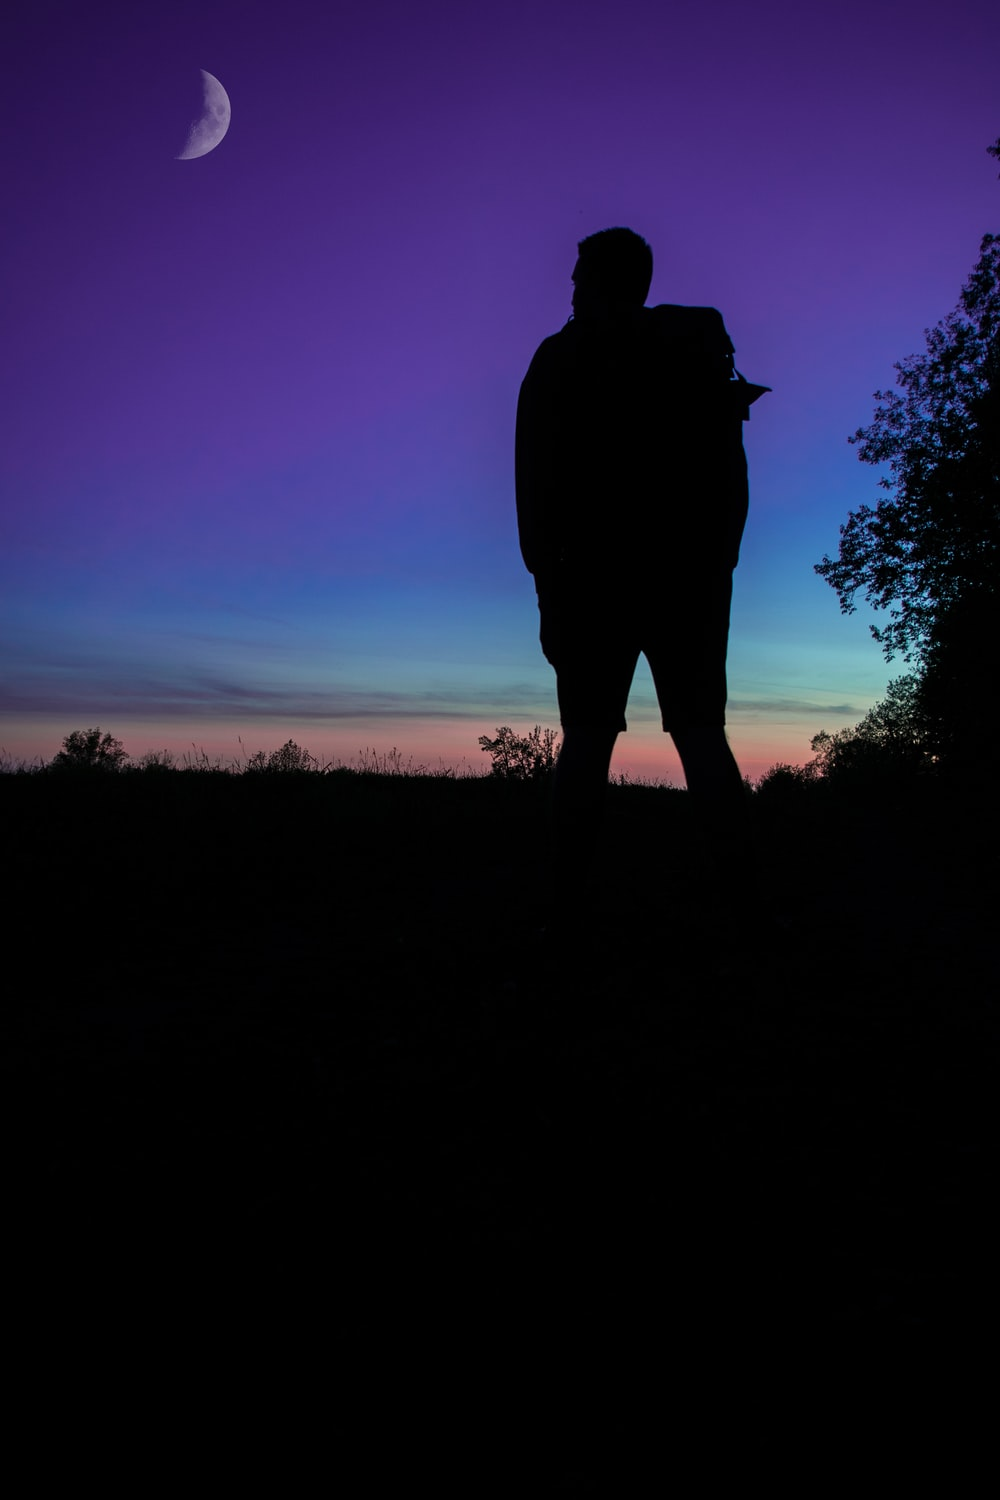 silhouette of person on grass